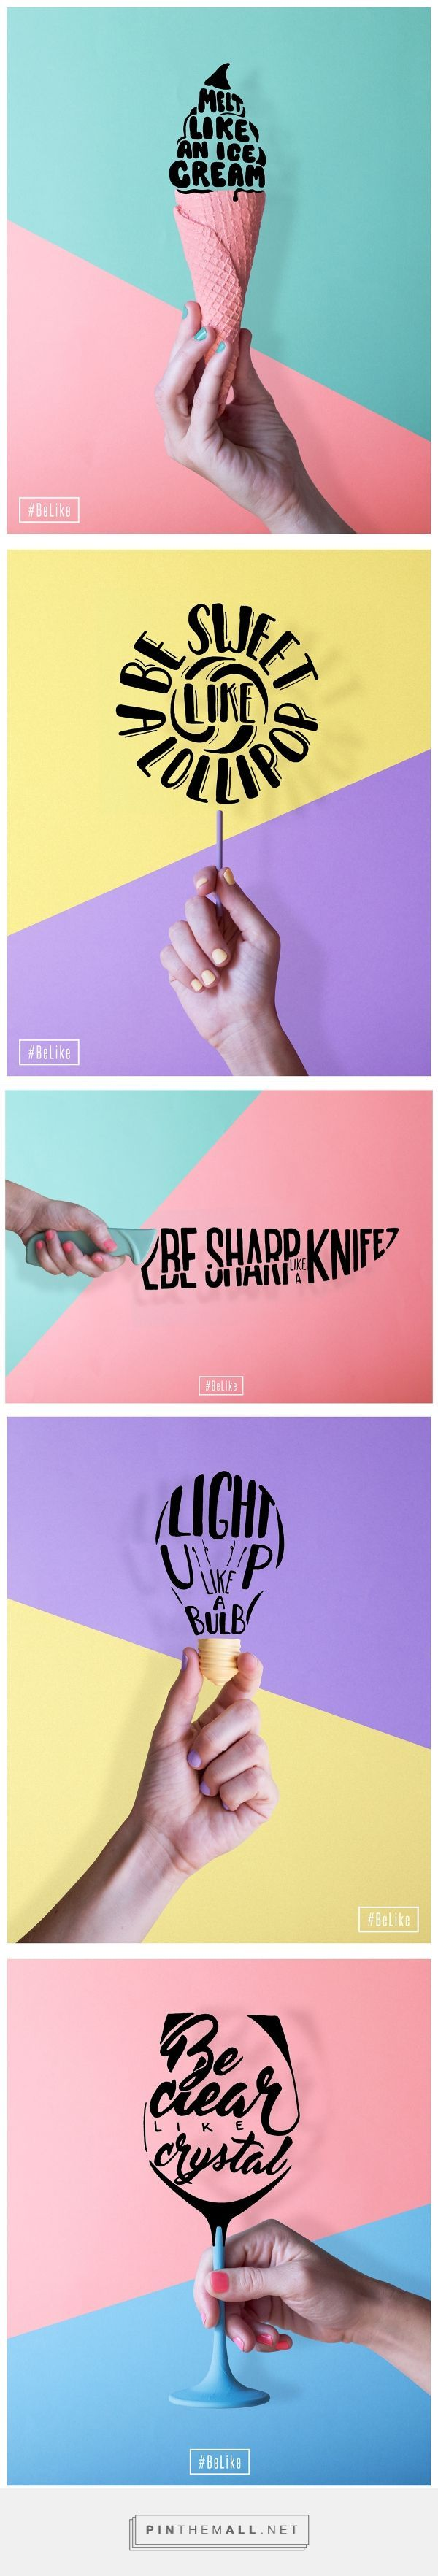 nice #BeLike on Behance - created via pinthemall.net...